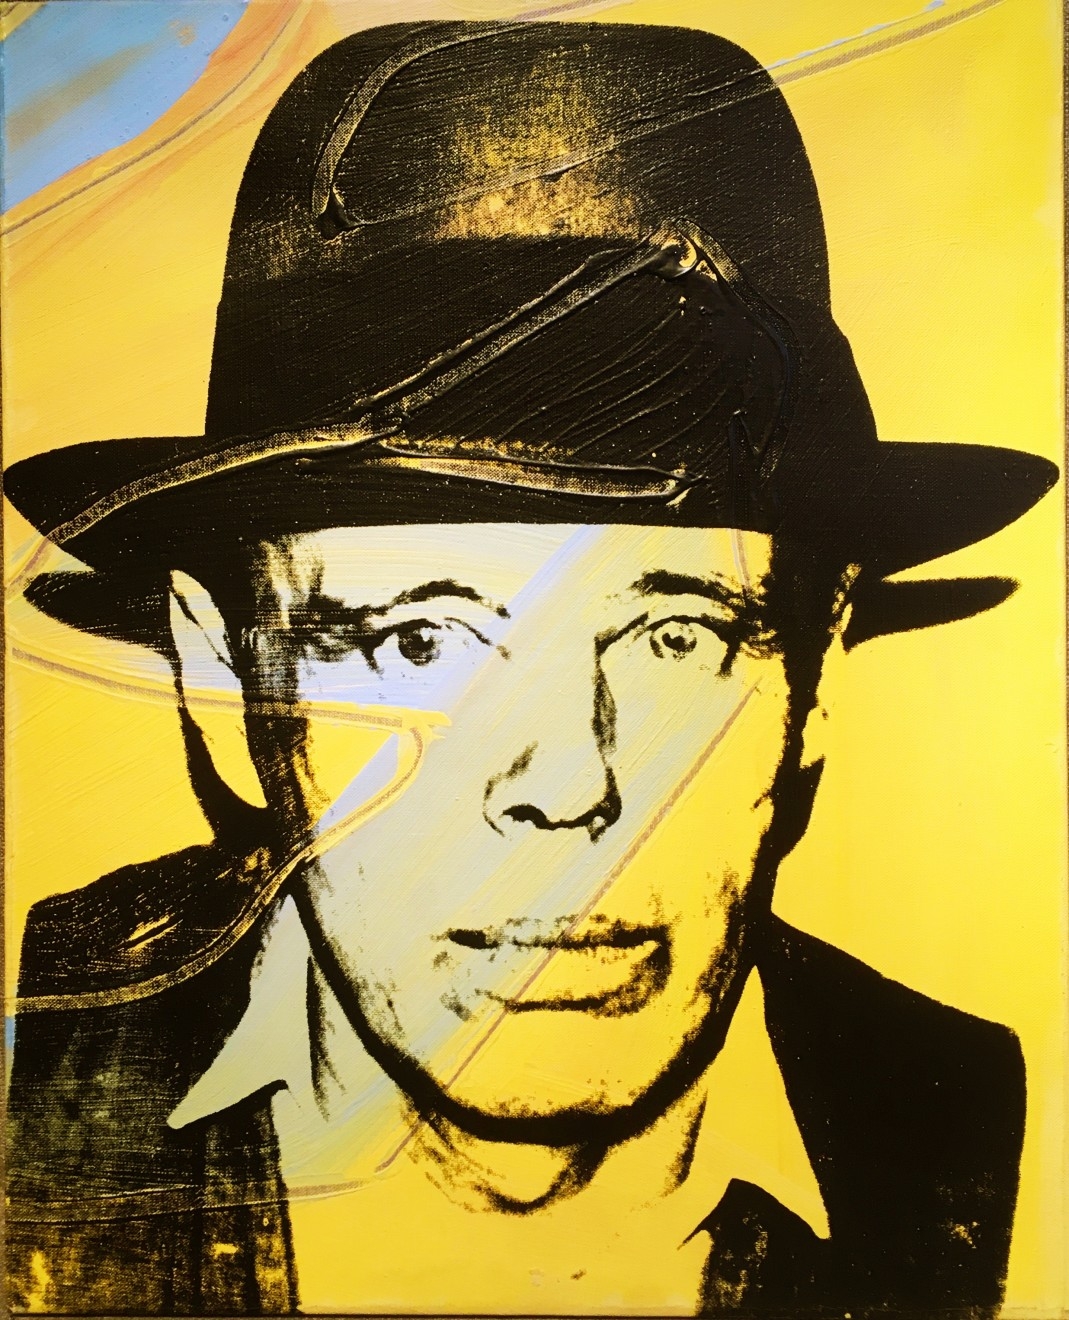 "<div class=""artist""><strong>Andy Warhol, </strong><em>Portrait of Joseph Beuys</em>, 1980</div><div class=""signed_and_dated""> </div>"